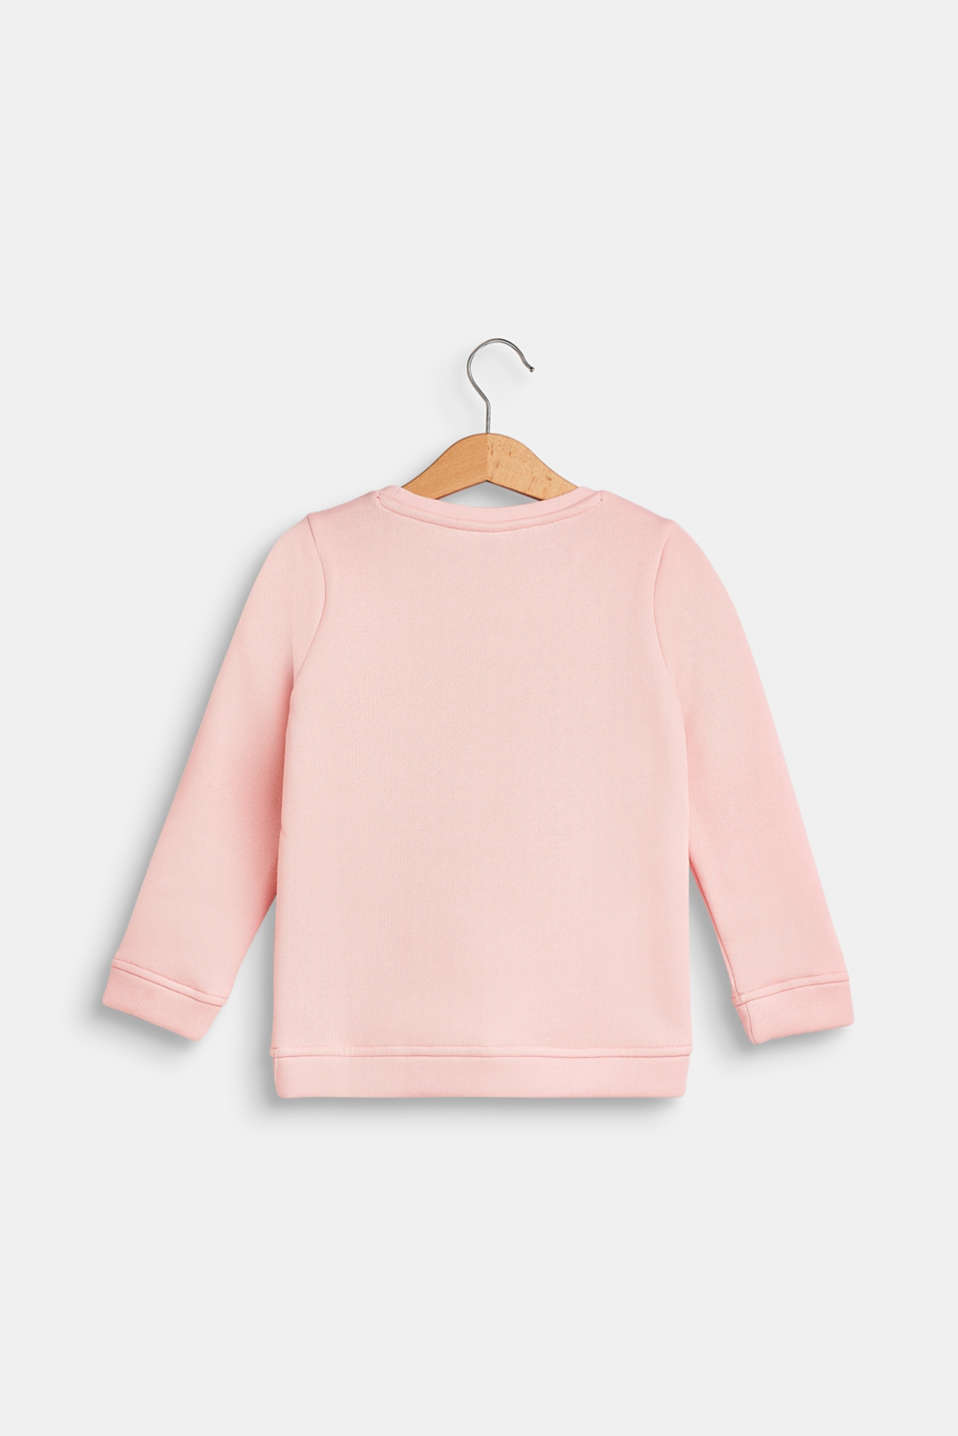 Statement sweatshirt with sequins, TINTED ROSE, detail image number 1